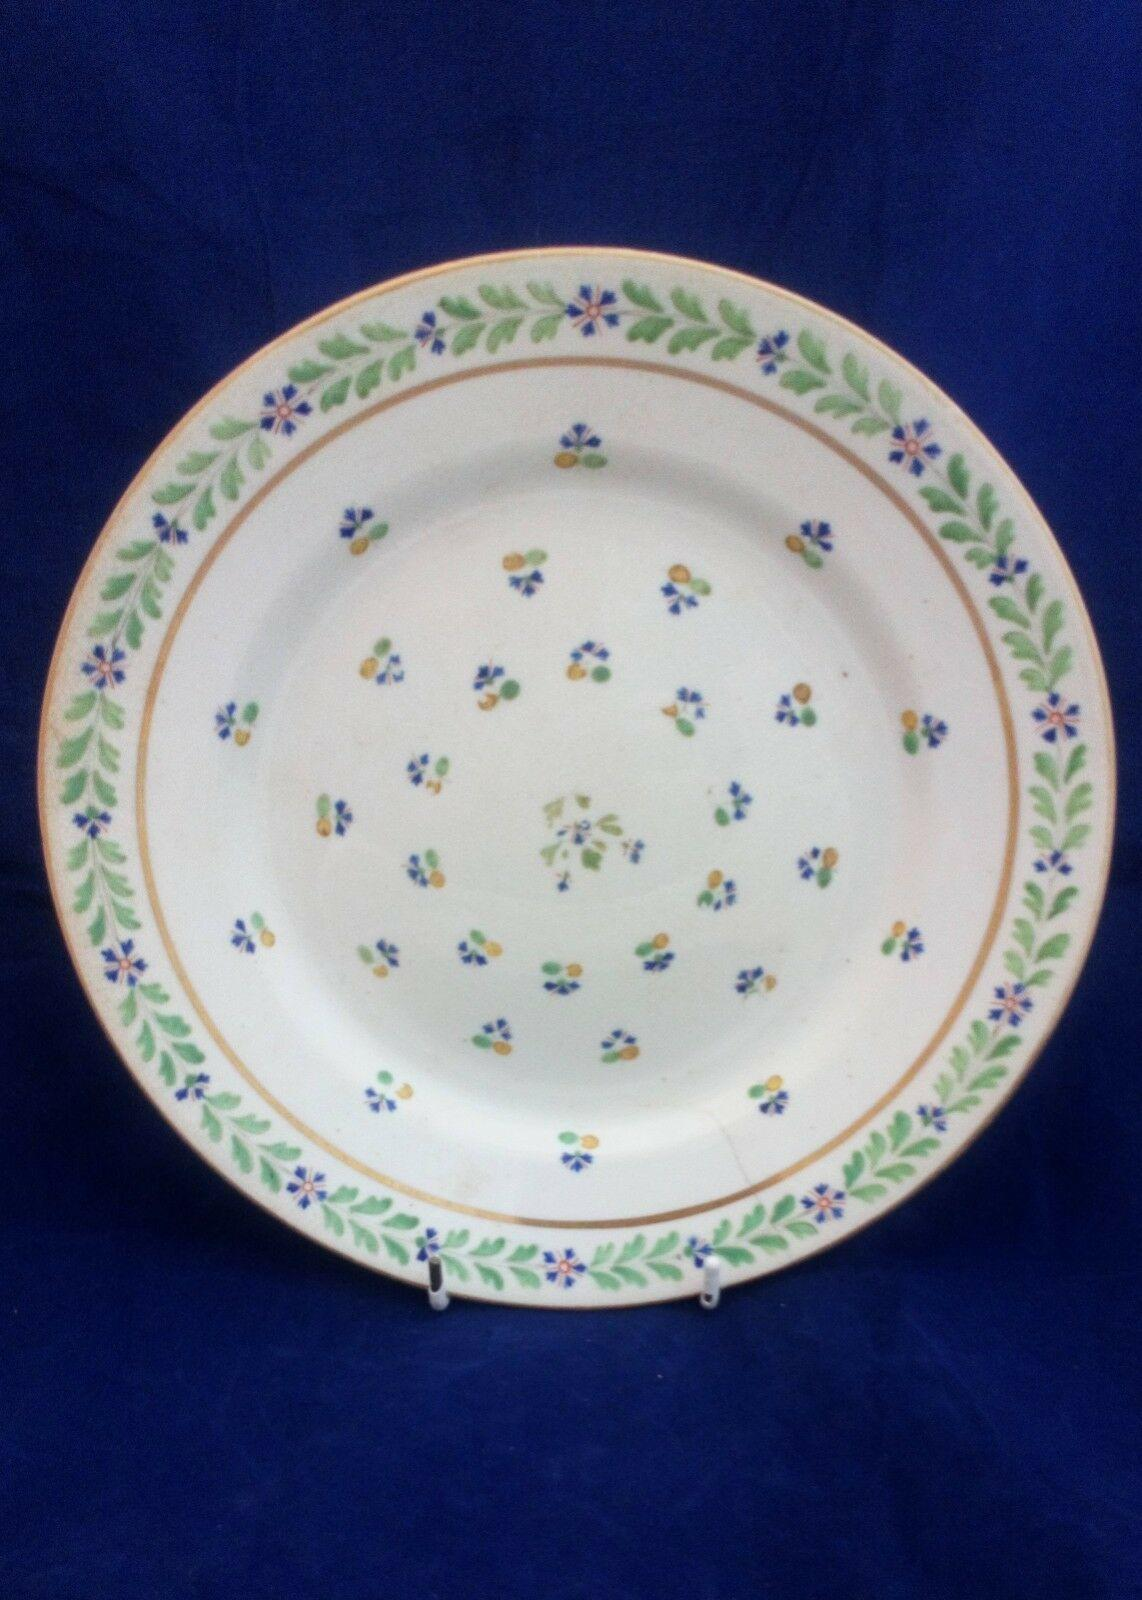 Georgian Derby Porcelain Plate Hand Painted Blue Flowers Pattern number 57 Antique c 1800